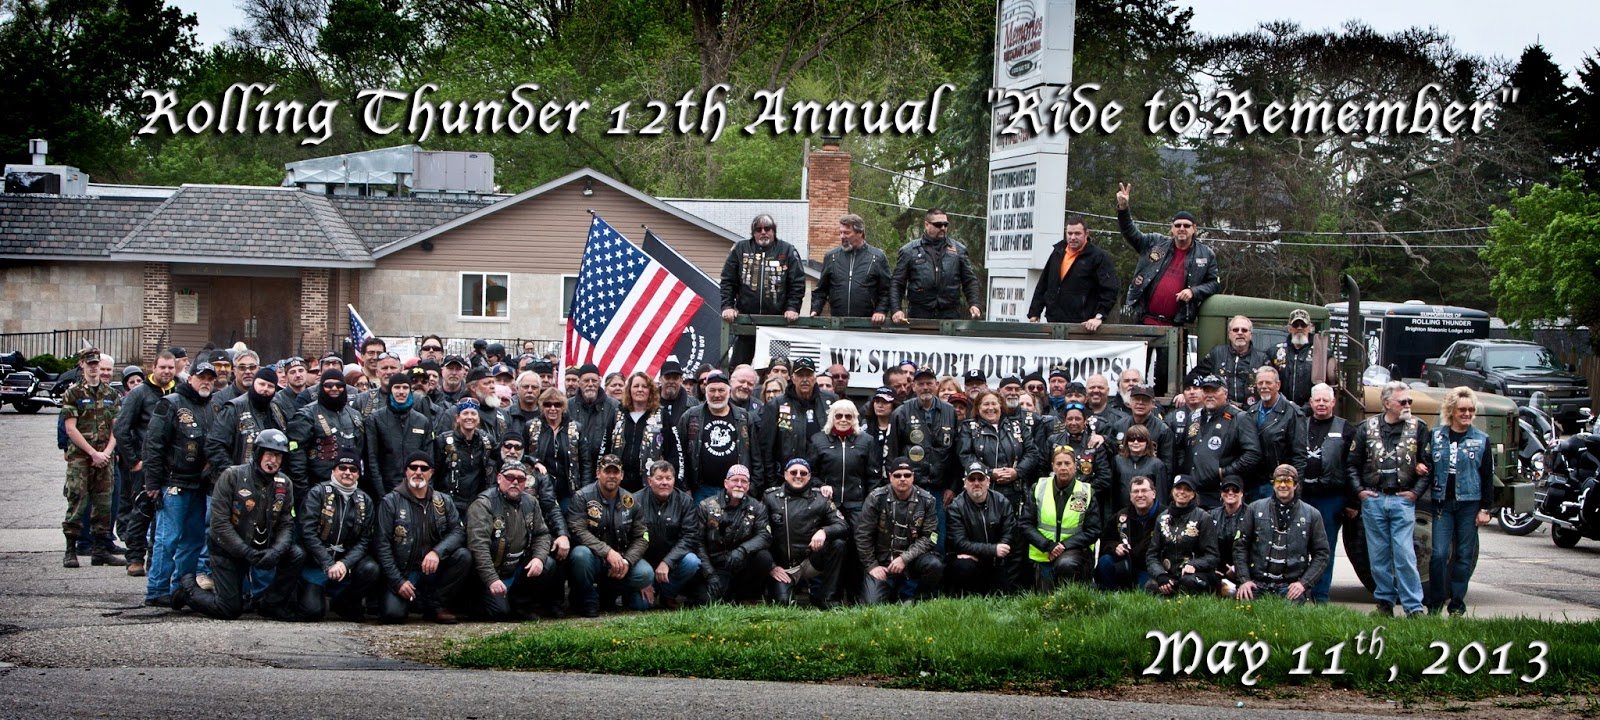 Rolling Thunder's 12th Annual Ride To Remember